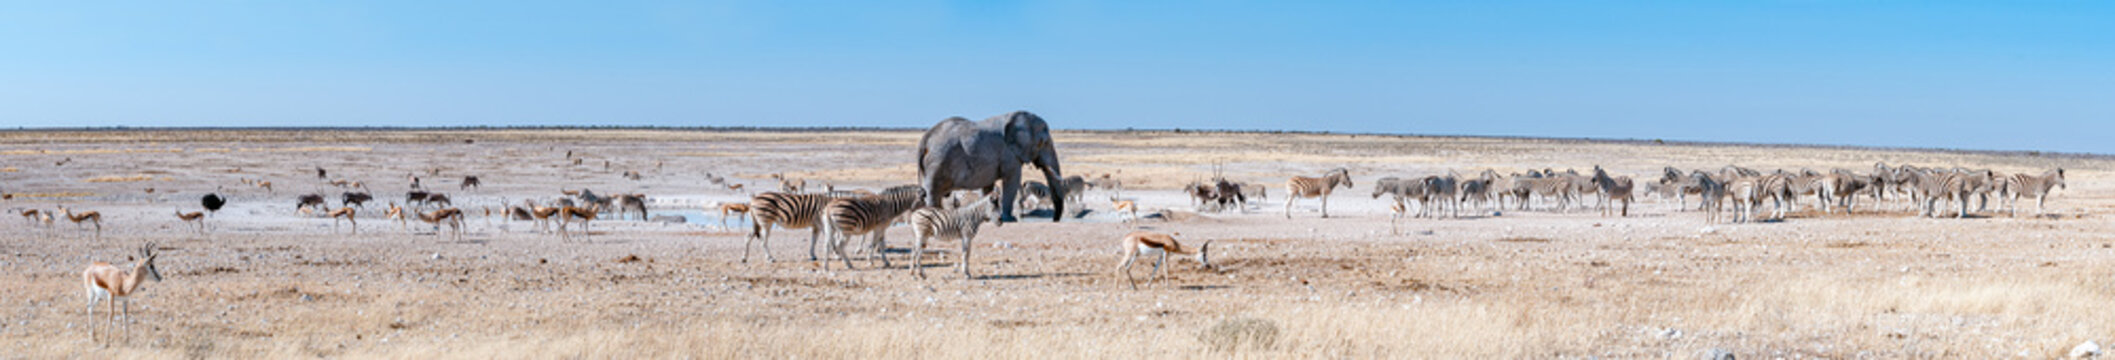 Panorama of african elephant drinking water at the Nebrownii waterhole